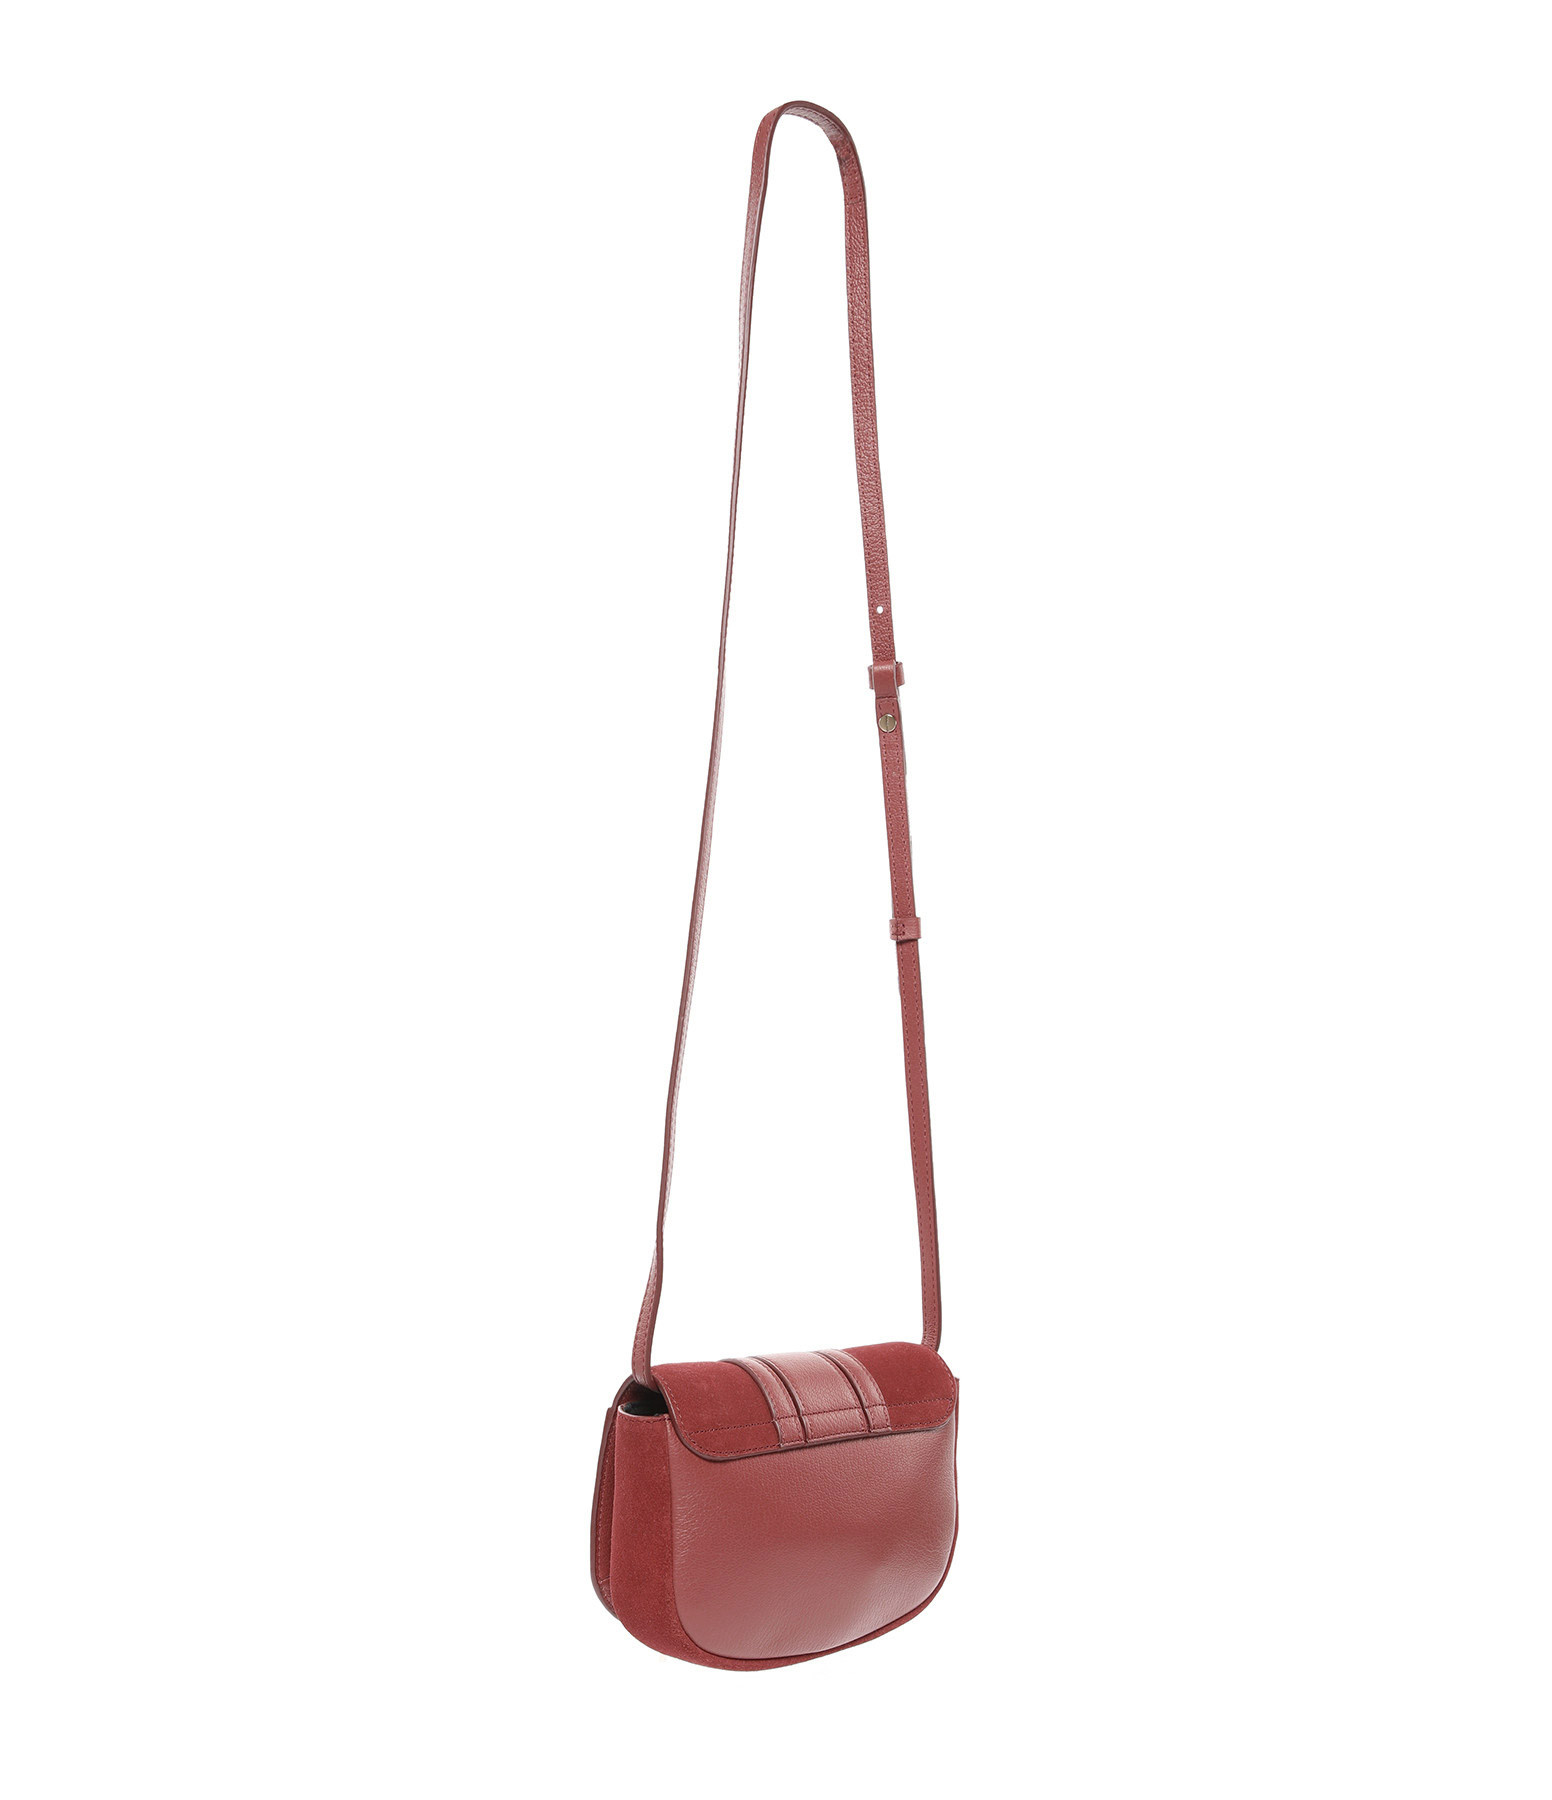 SEE BY CHLOE - Sac Hana Cuir Suédé Faded Red